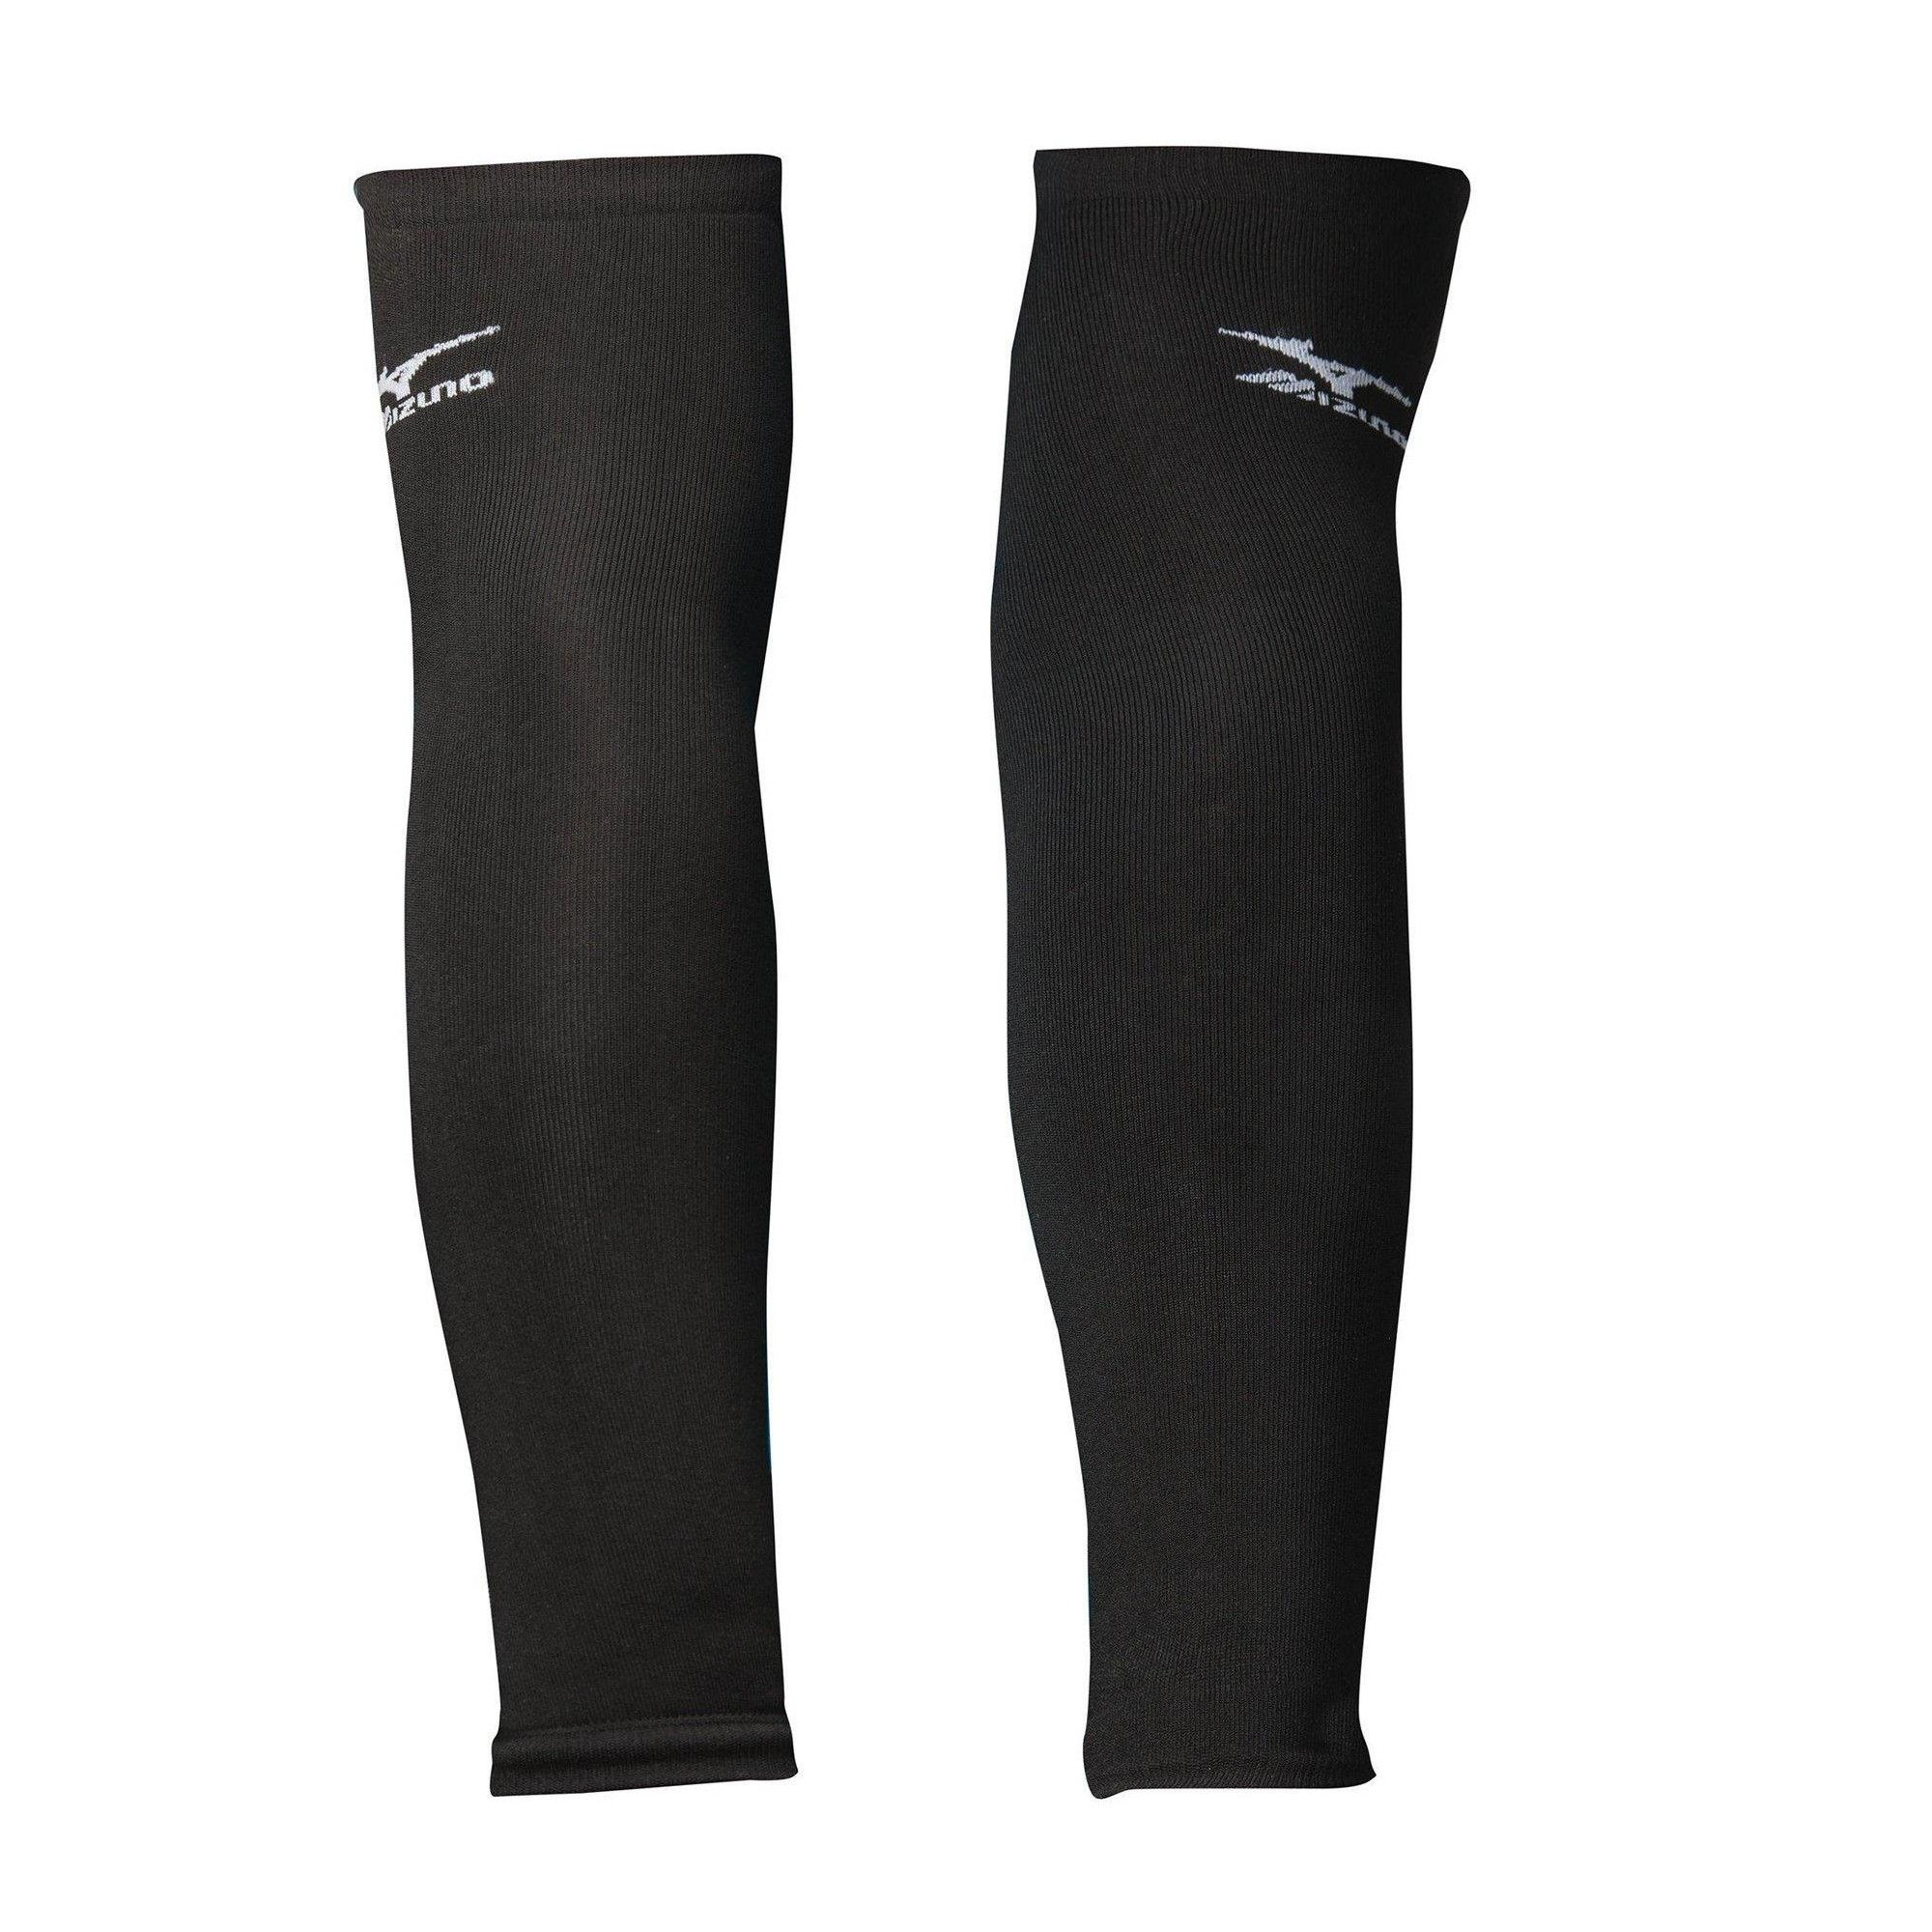 Mizuno Volleyball Arm Sleeves Unisex Size One Size Fits All In Color Black 9090 Mizuno Volleyball Volleyball Volleyball Accessories